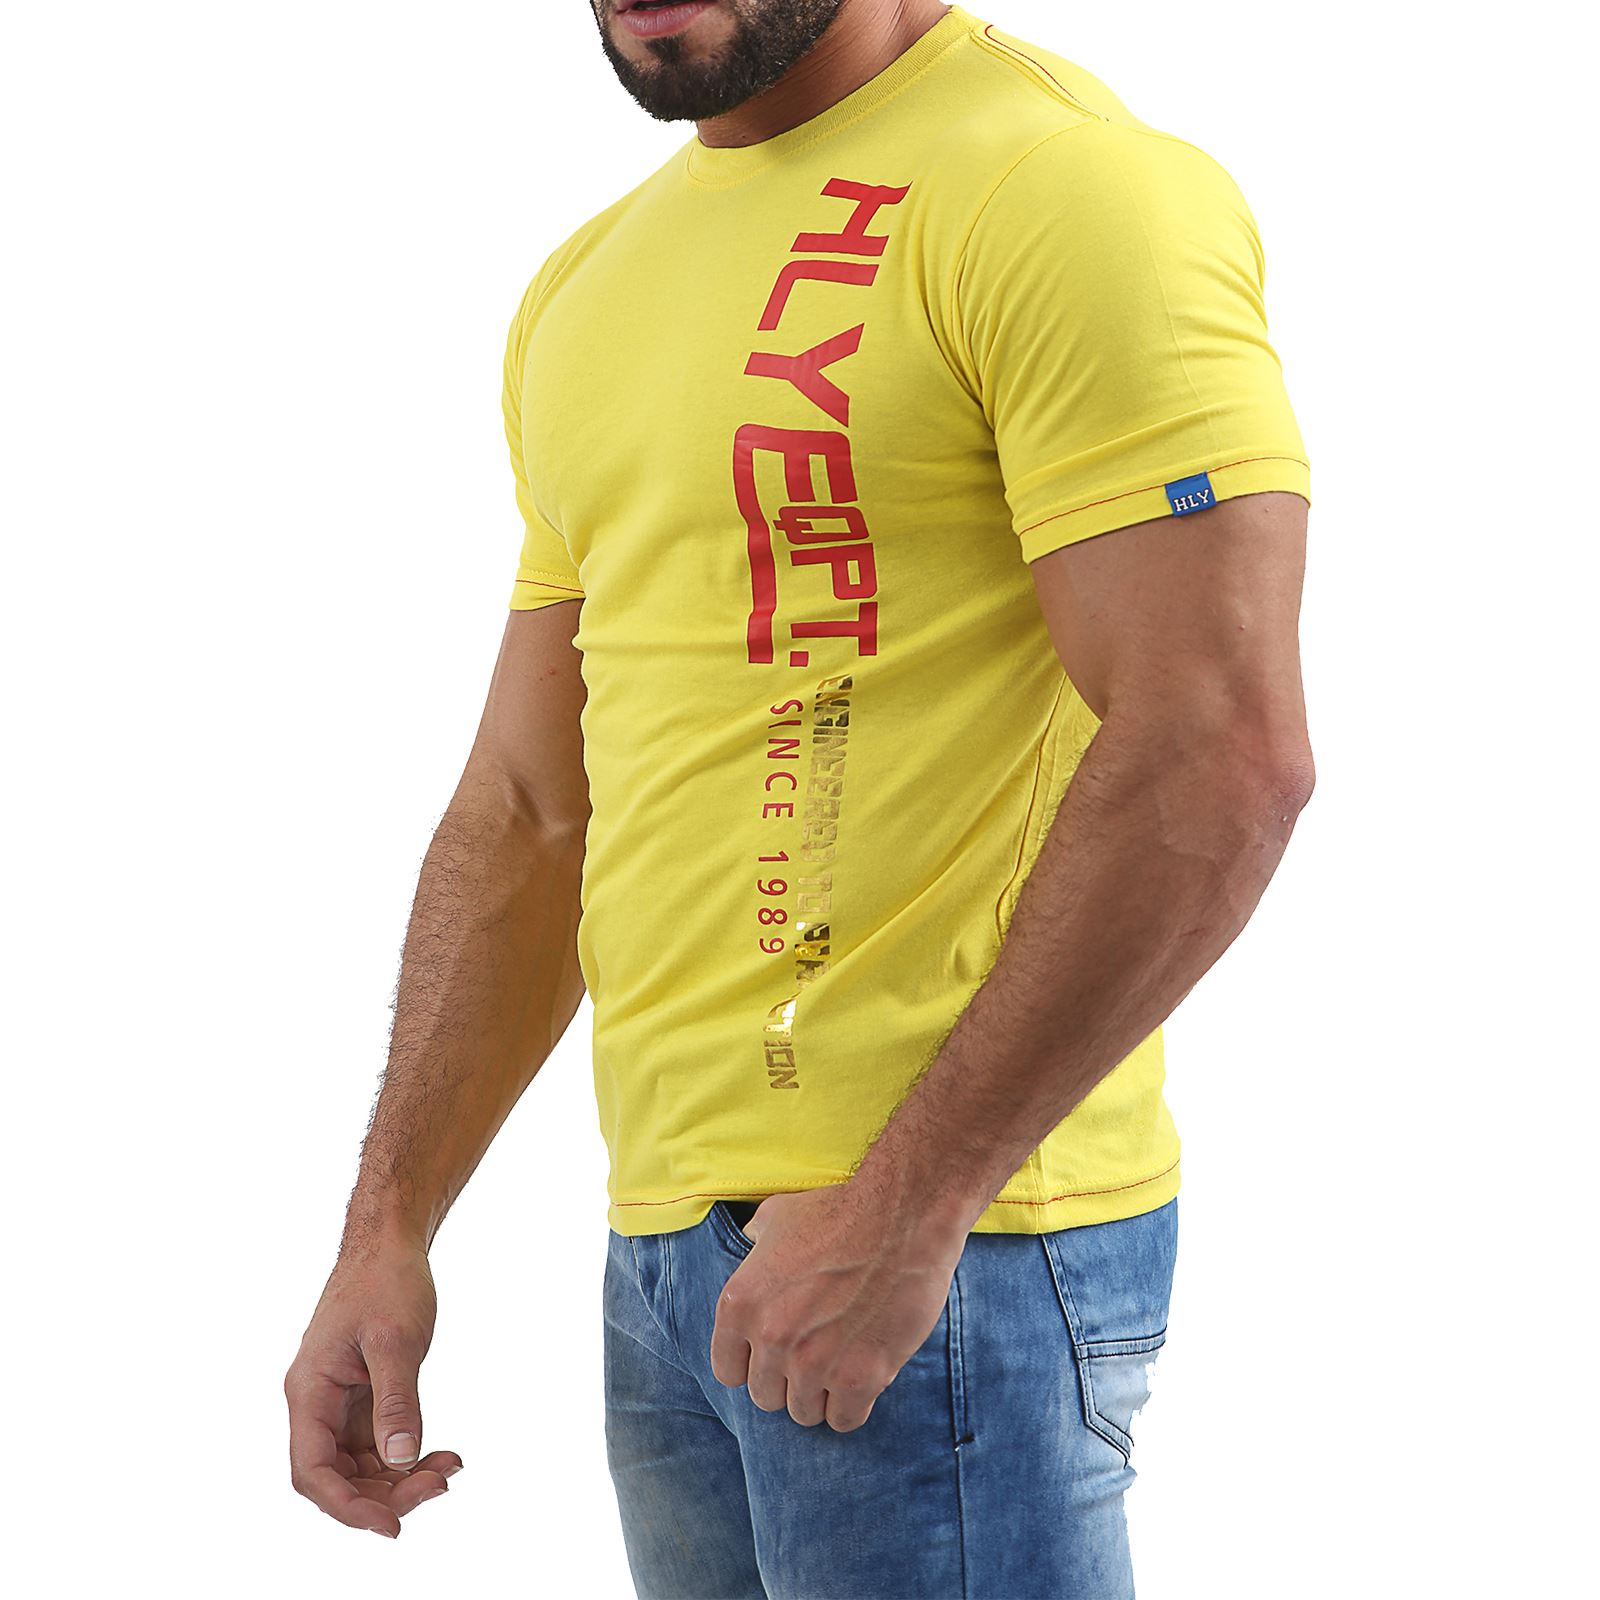 Mens-HLY-EQPT-Printed-T-Shirt-100-Cotton-Gym-Athletic-Training-Tee-Top-Summer thumbnail 17